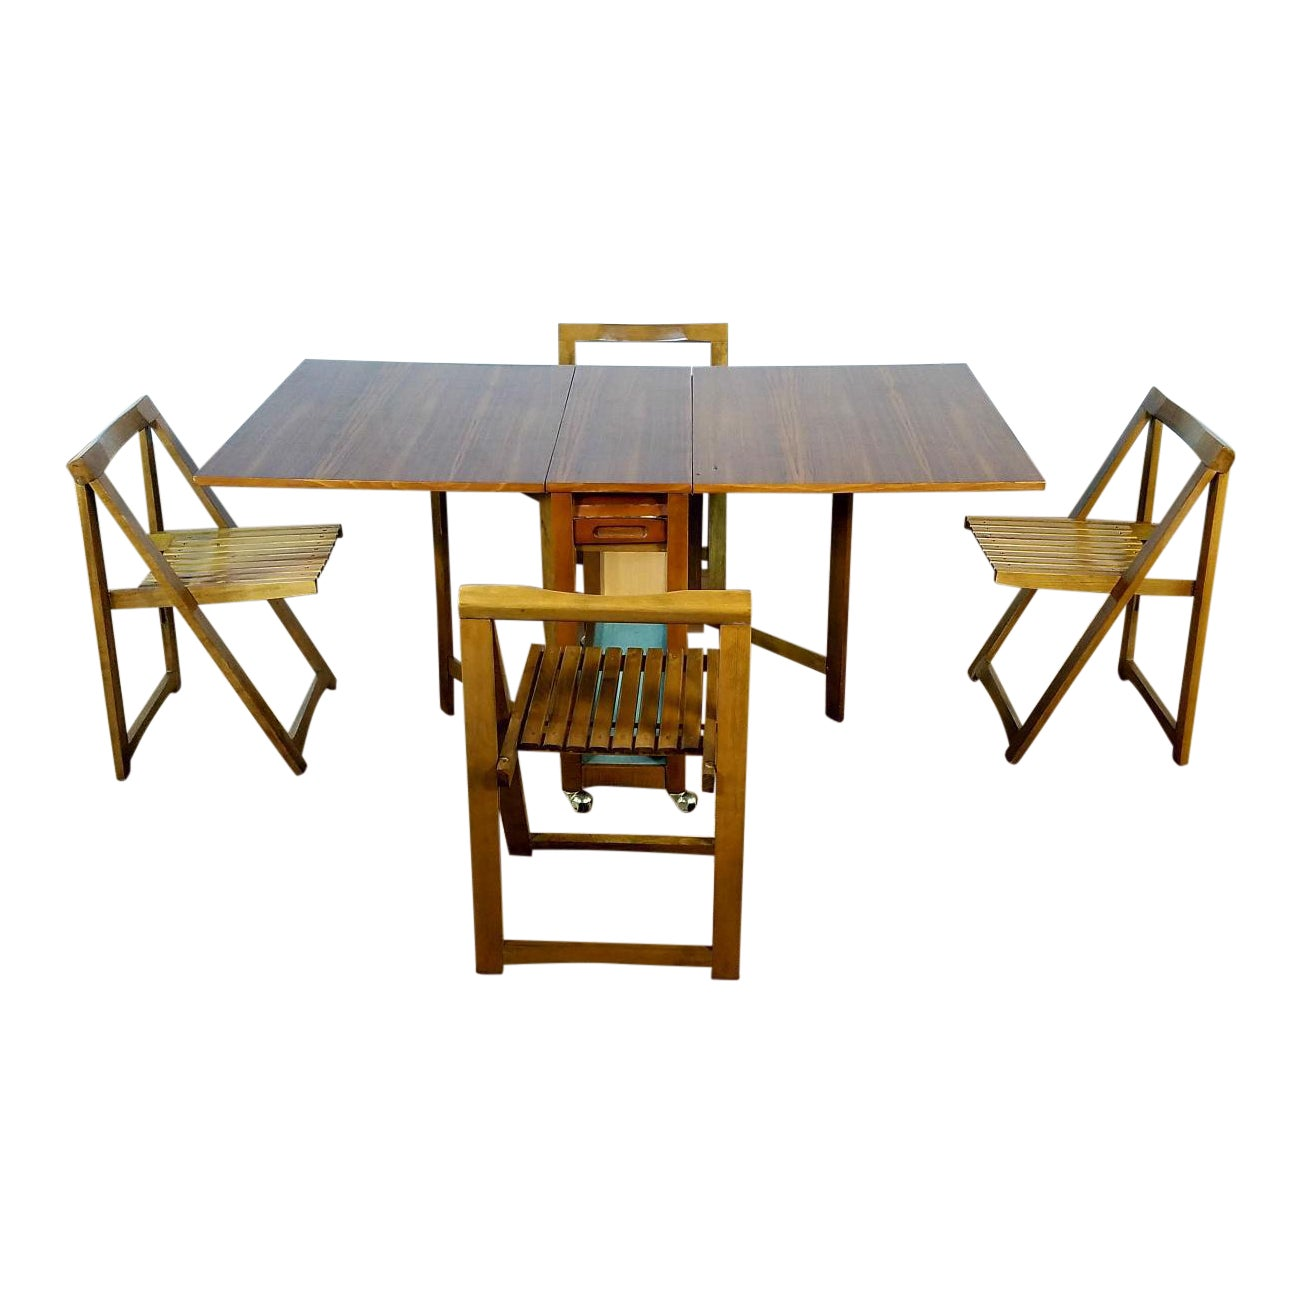 Mid-Century Vintage Hideaway Table With 4 Chairs - Dining Set   Chairish